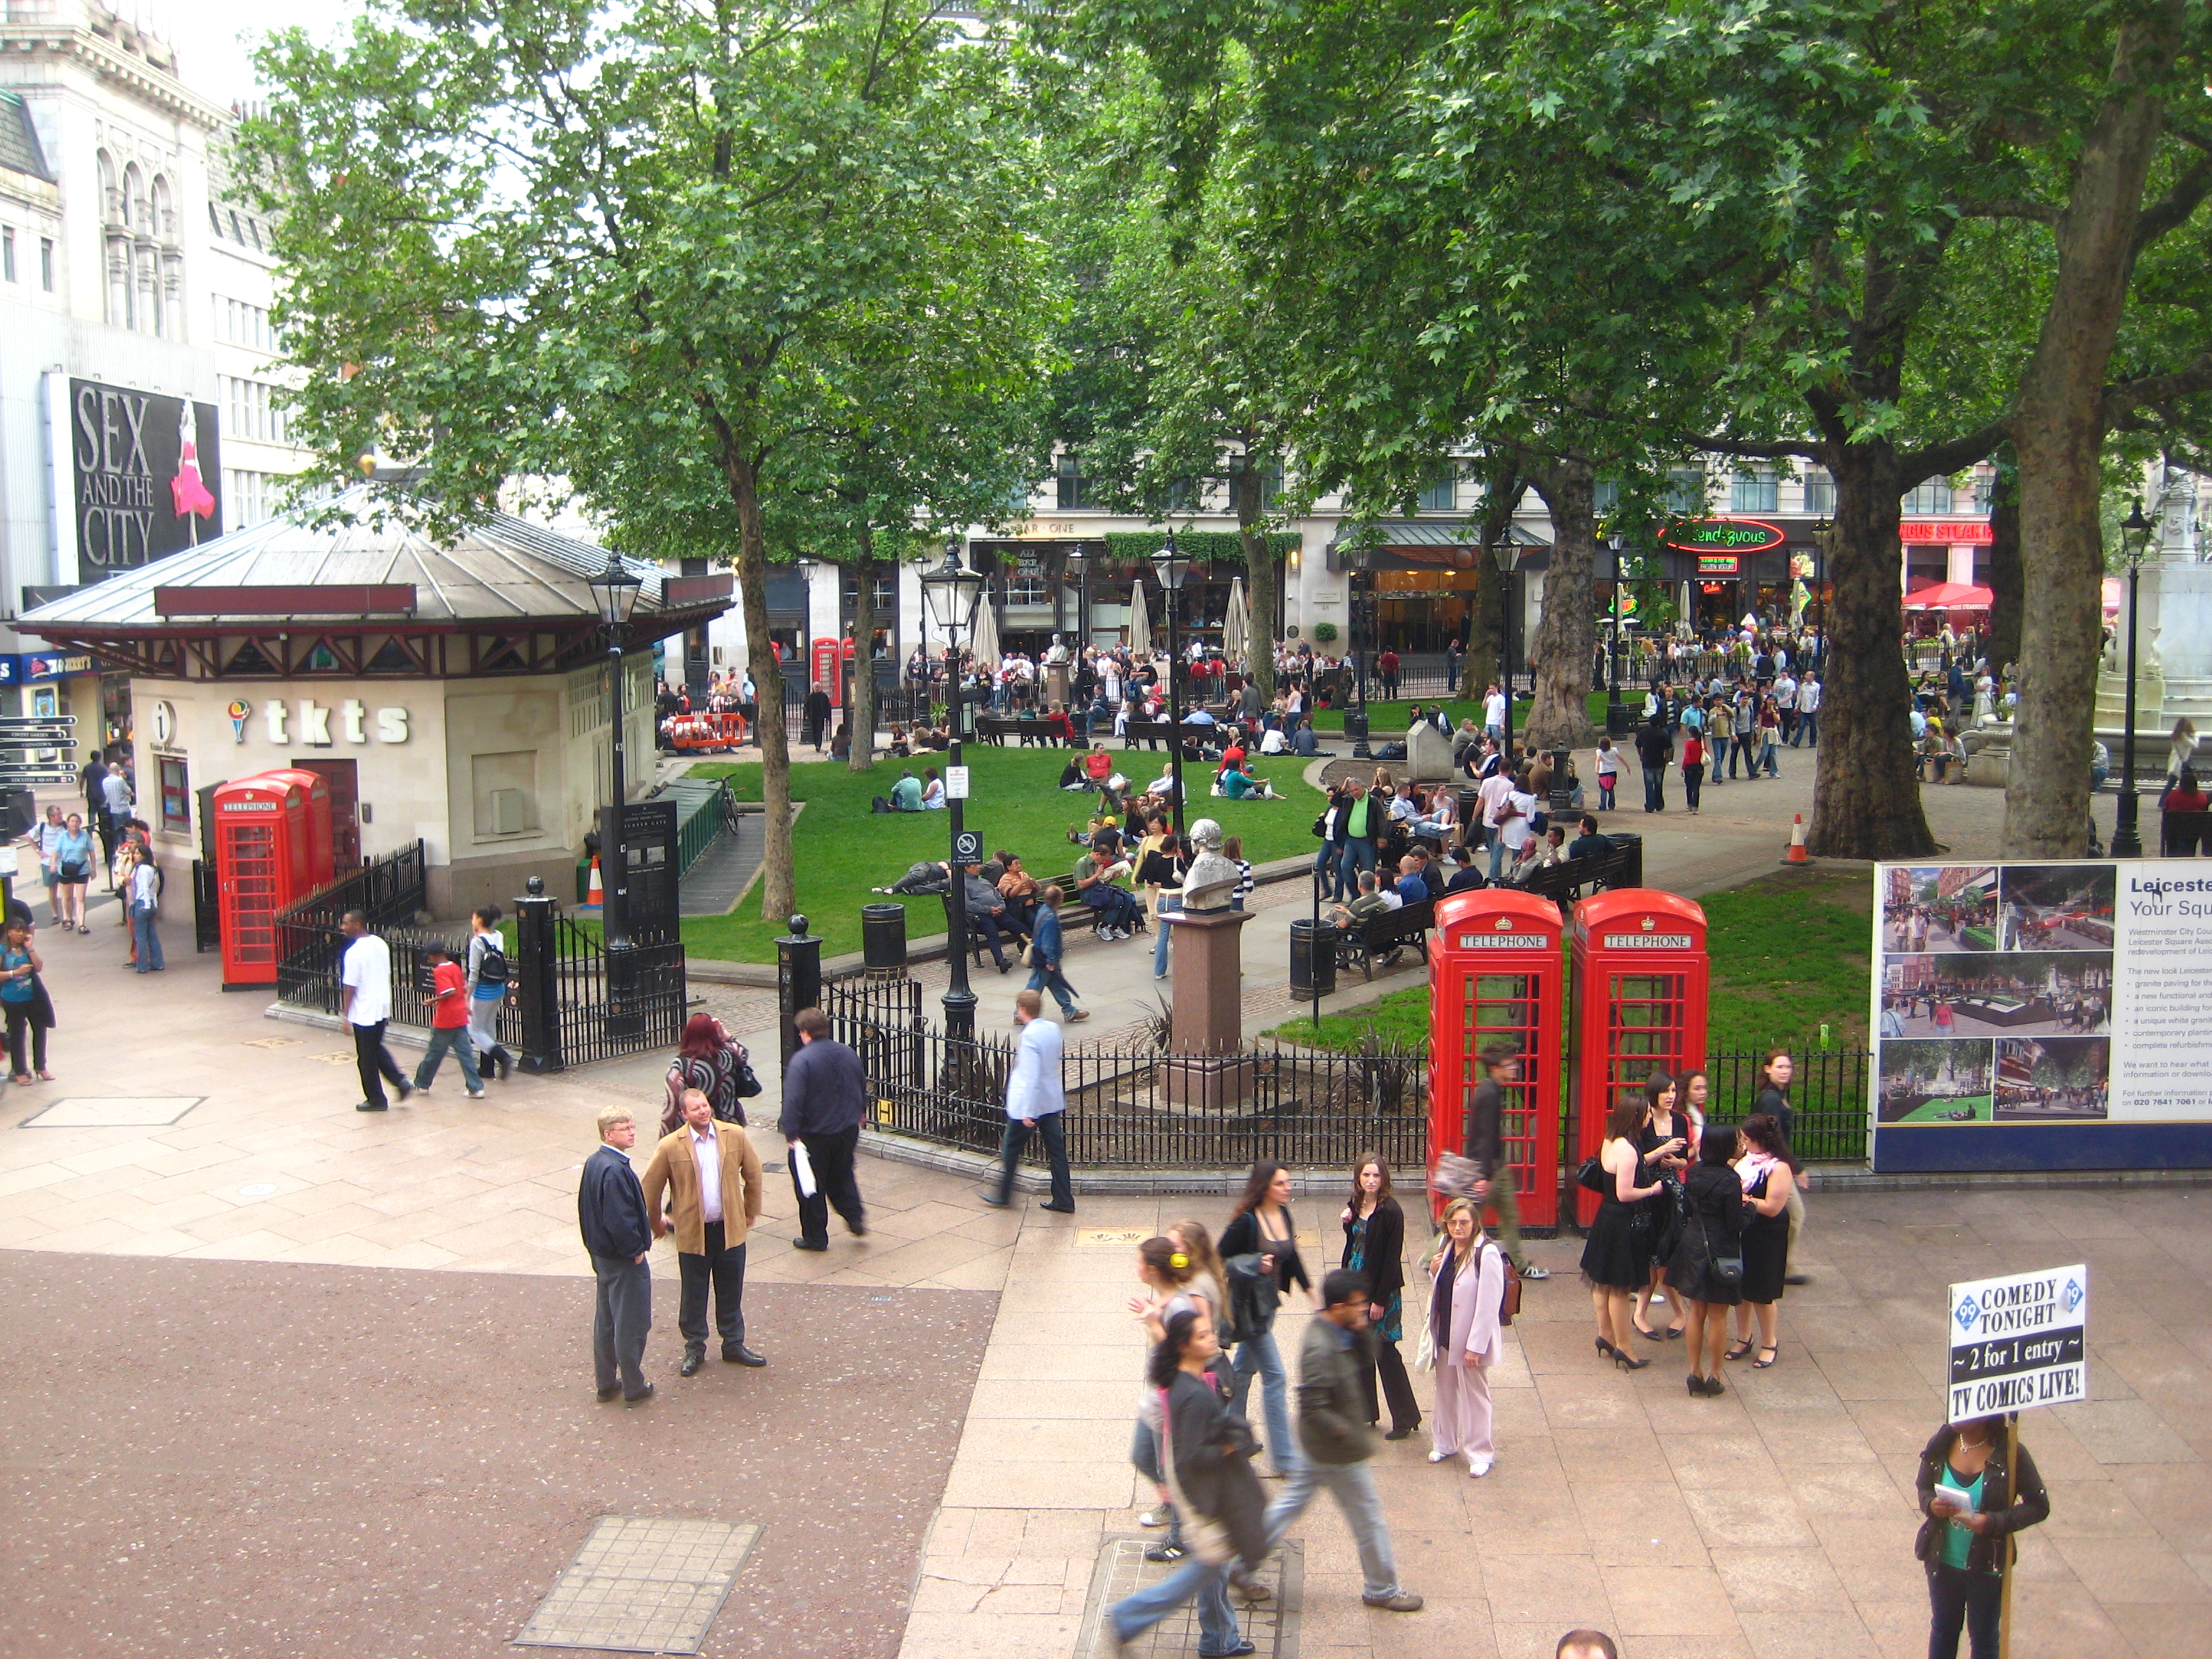 leicester square speed dating